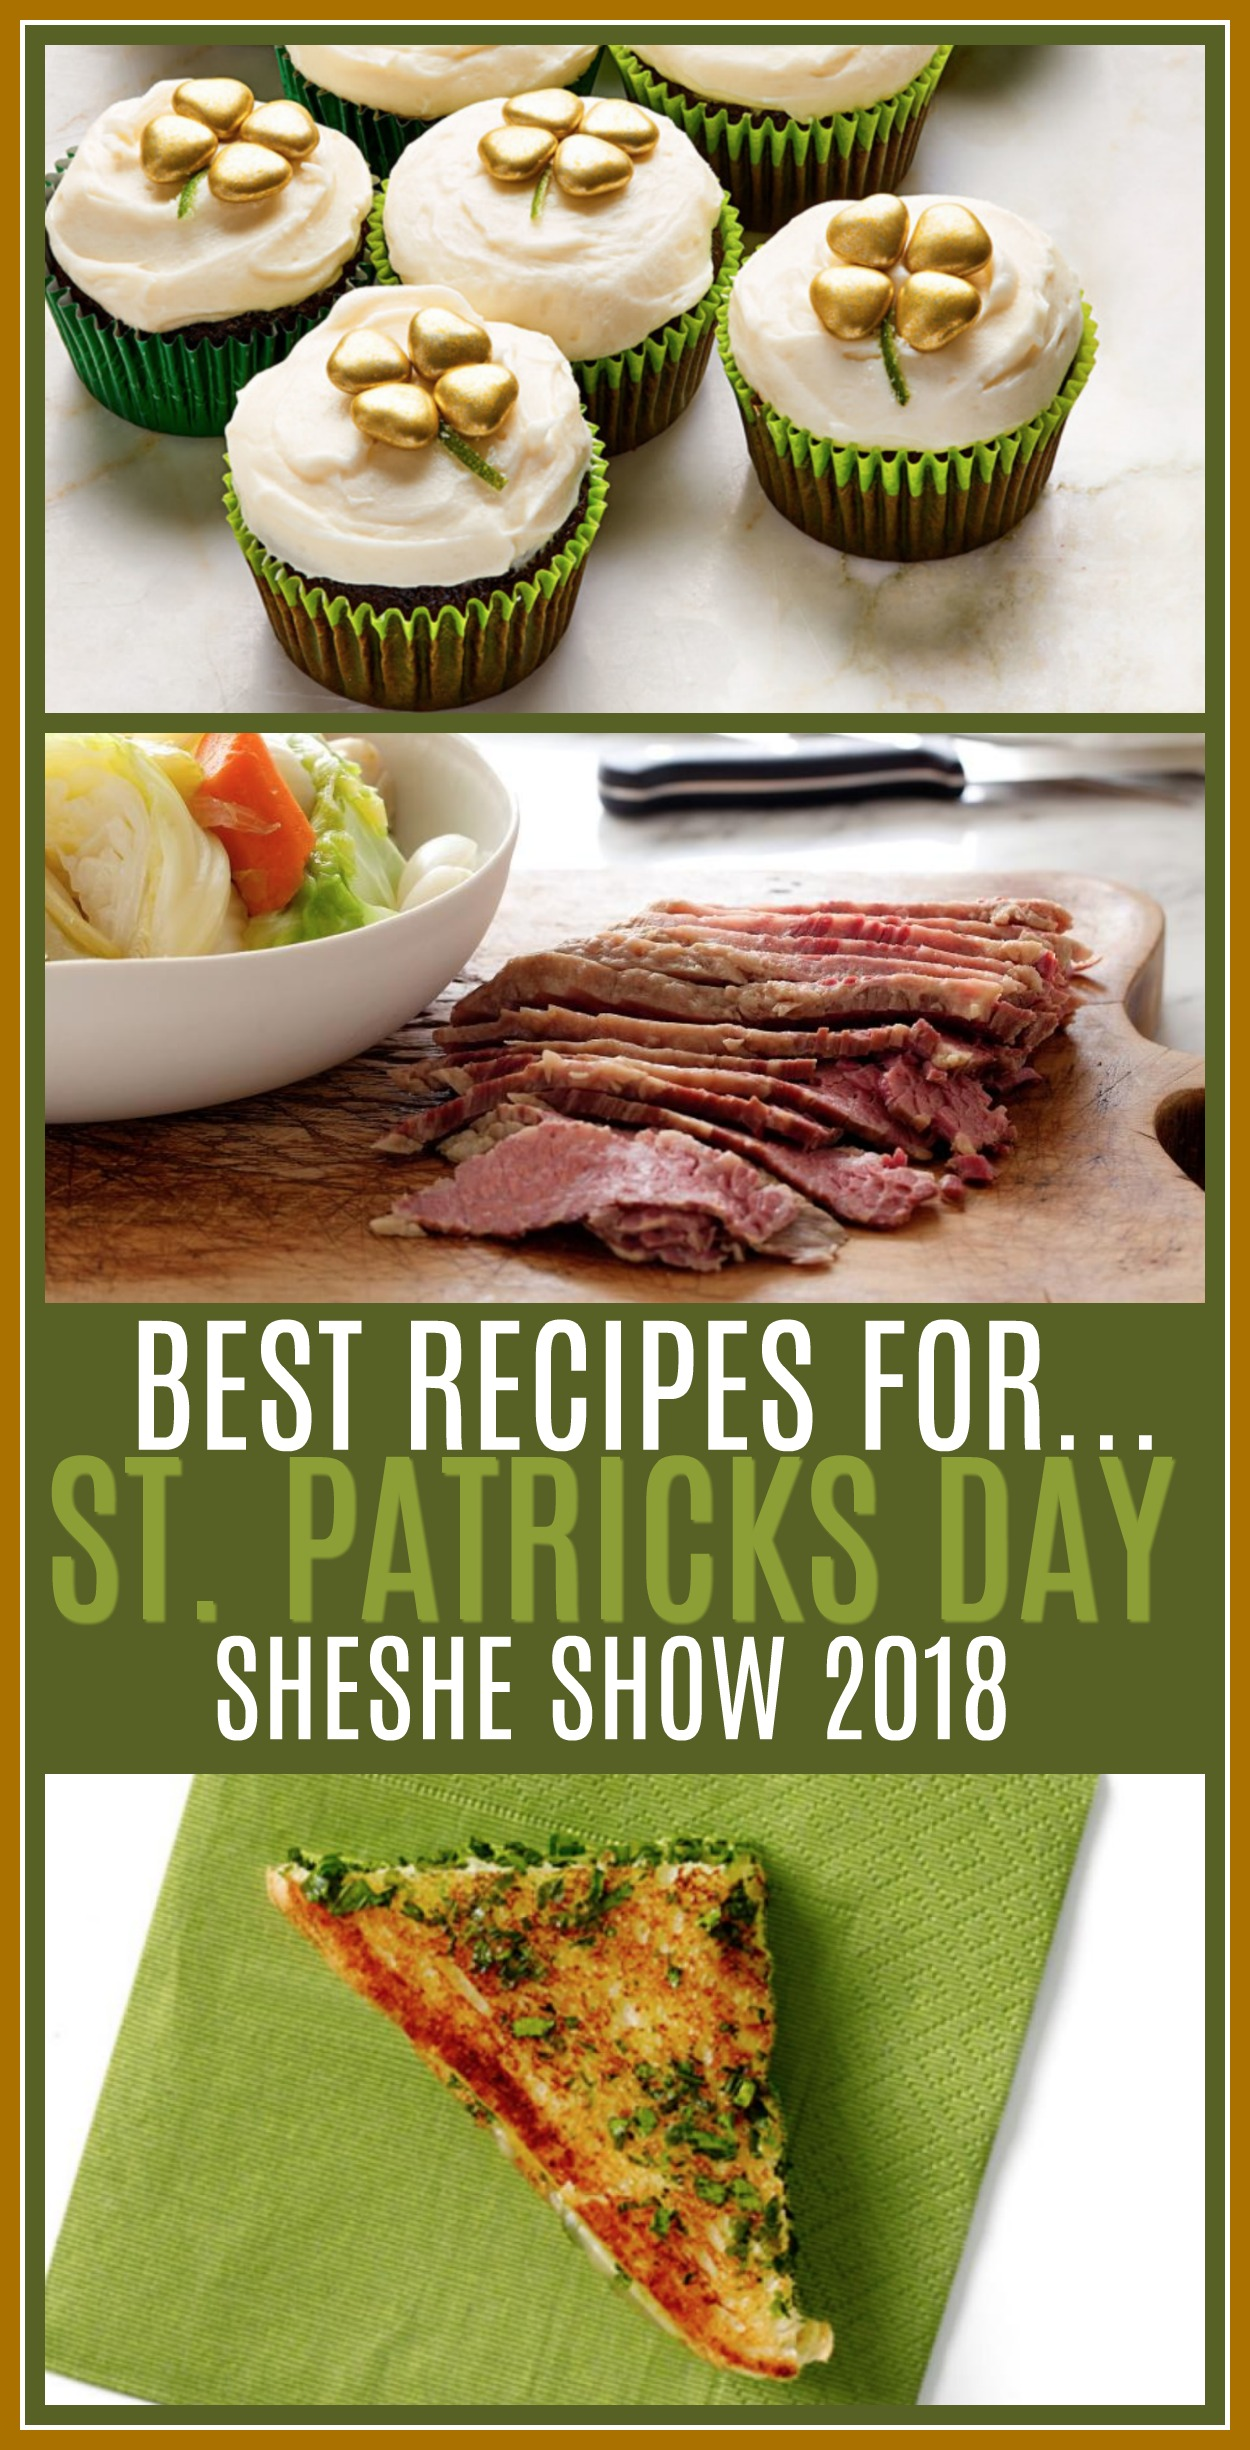 st. patricks day, st. patrick's day recipes, st. patrick's day history, st. patrick's day food, st. patricks day 2018